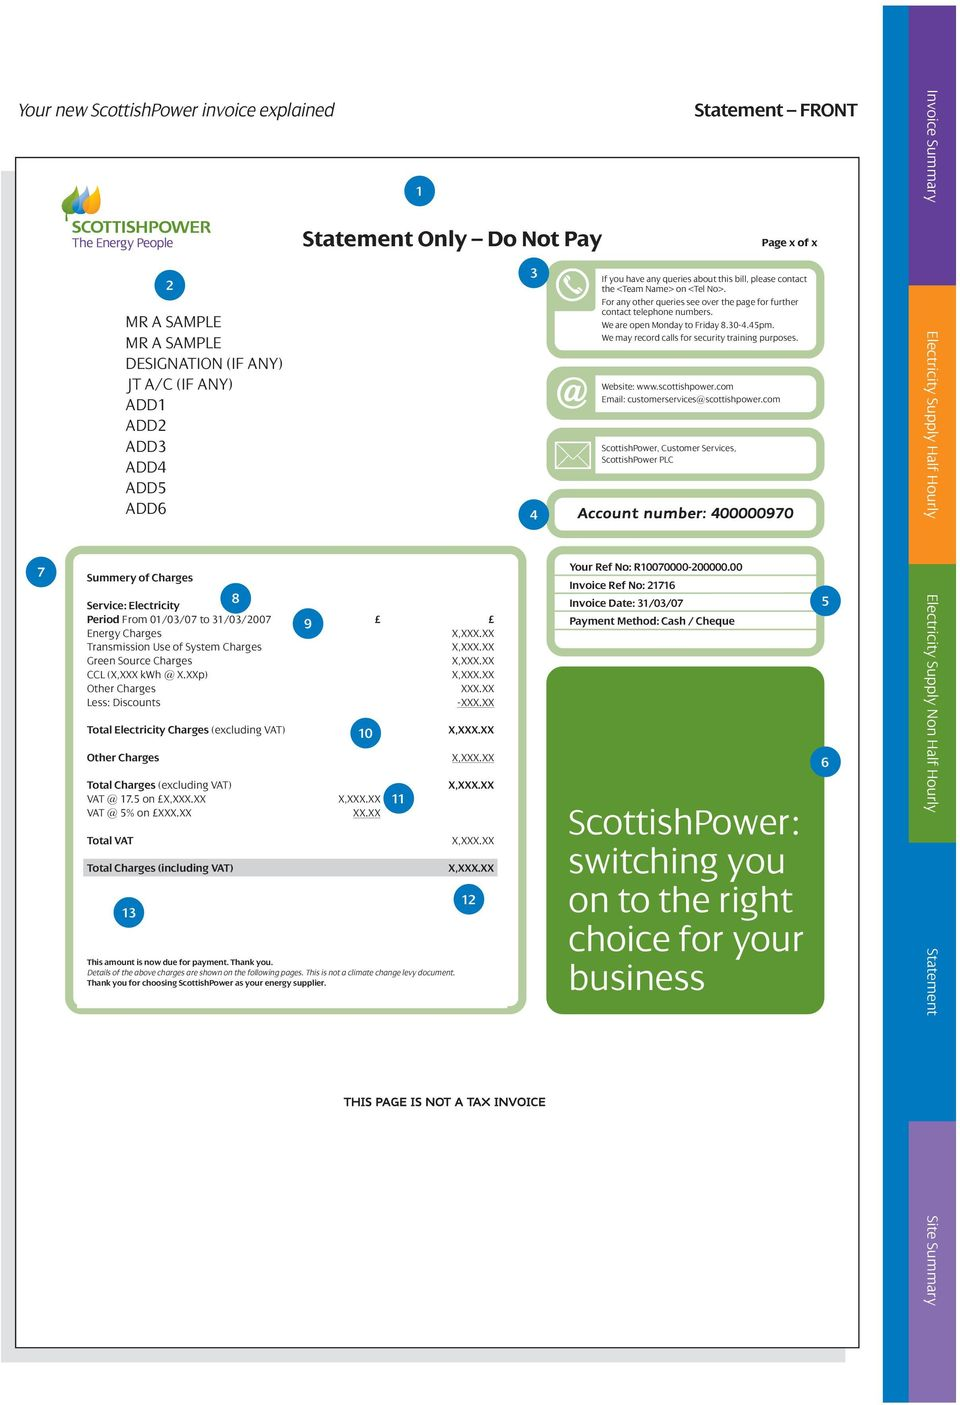 We may record calls for security training purposes. Website: www.scottishpower.com Email: customerservices@scottishpower.